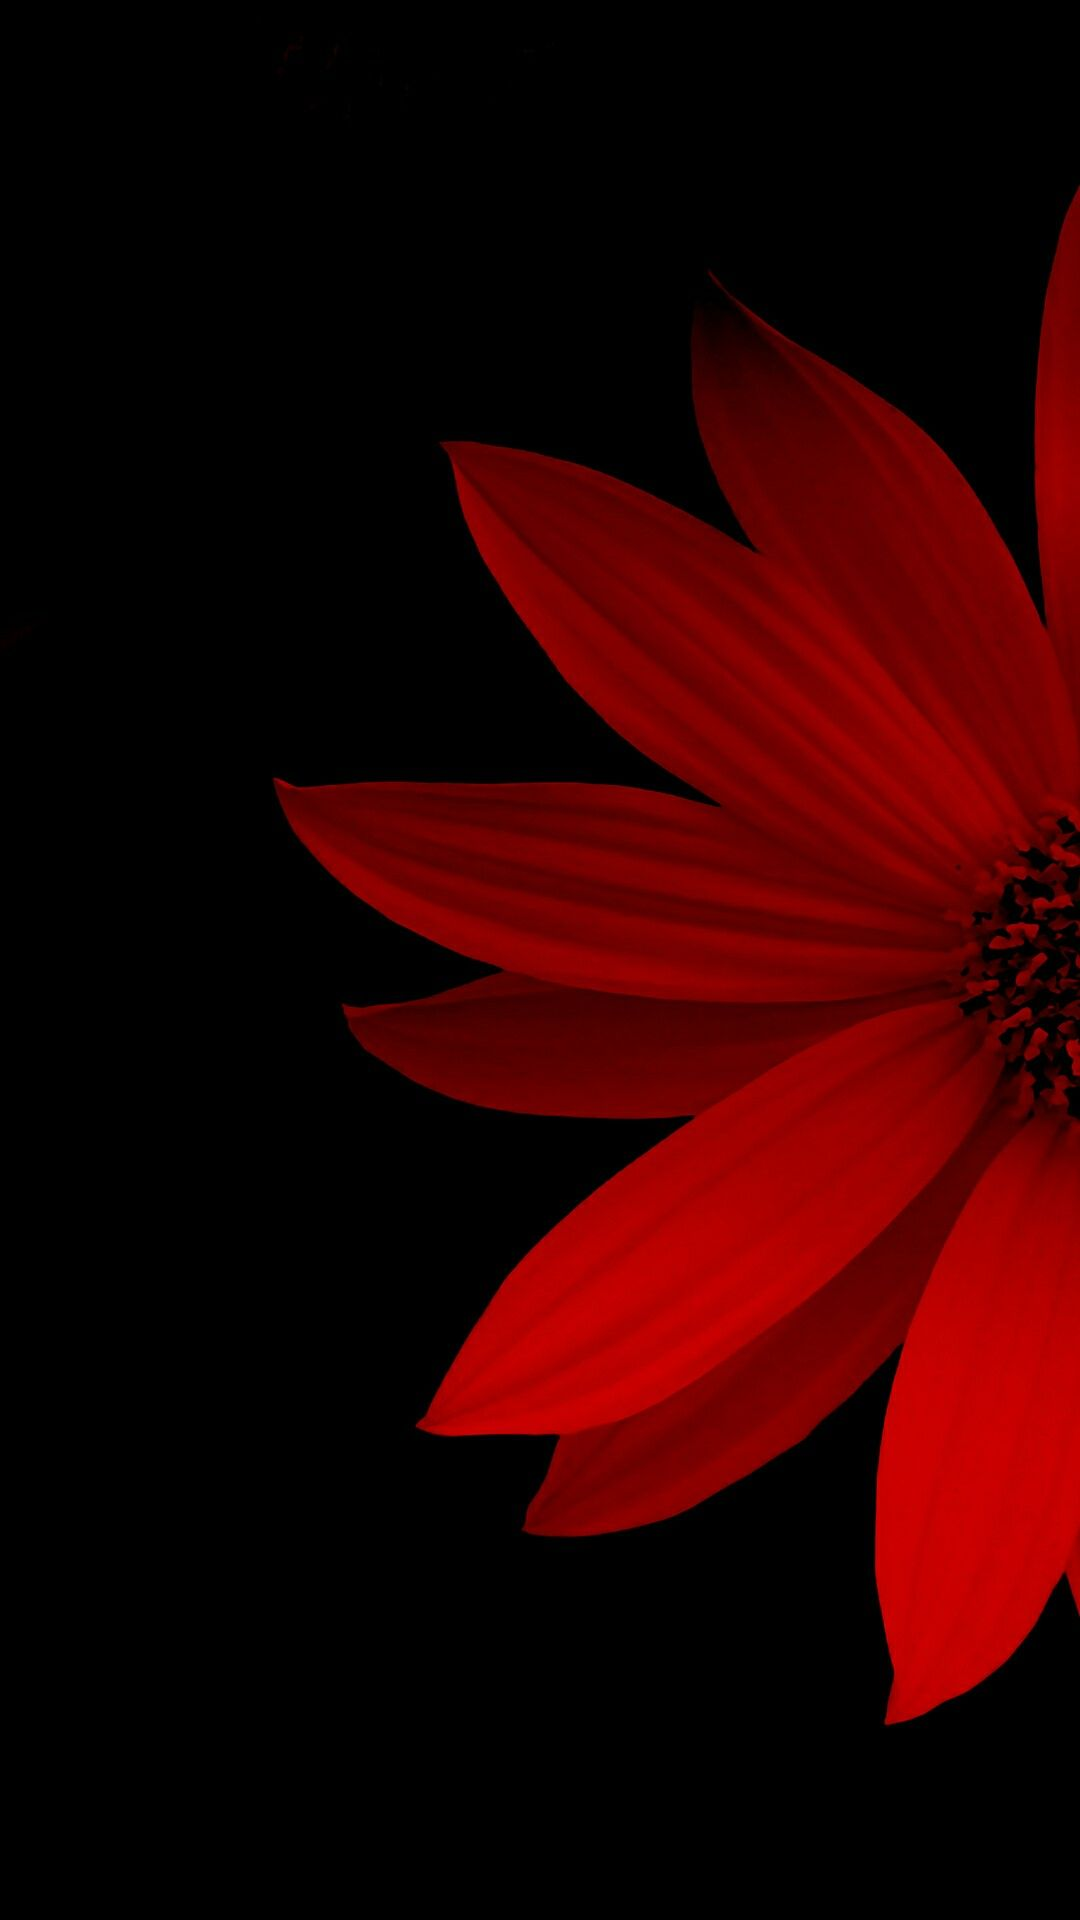 Wall Of Frame Flower Wallpaper Art Background Red Wallpaper